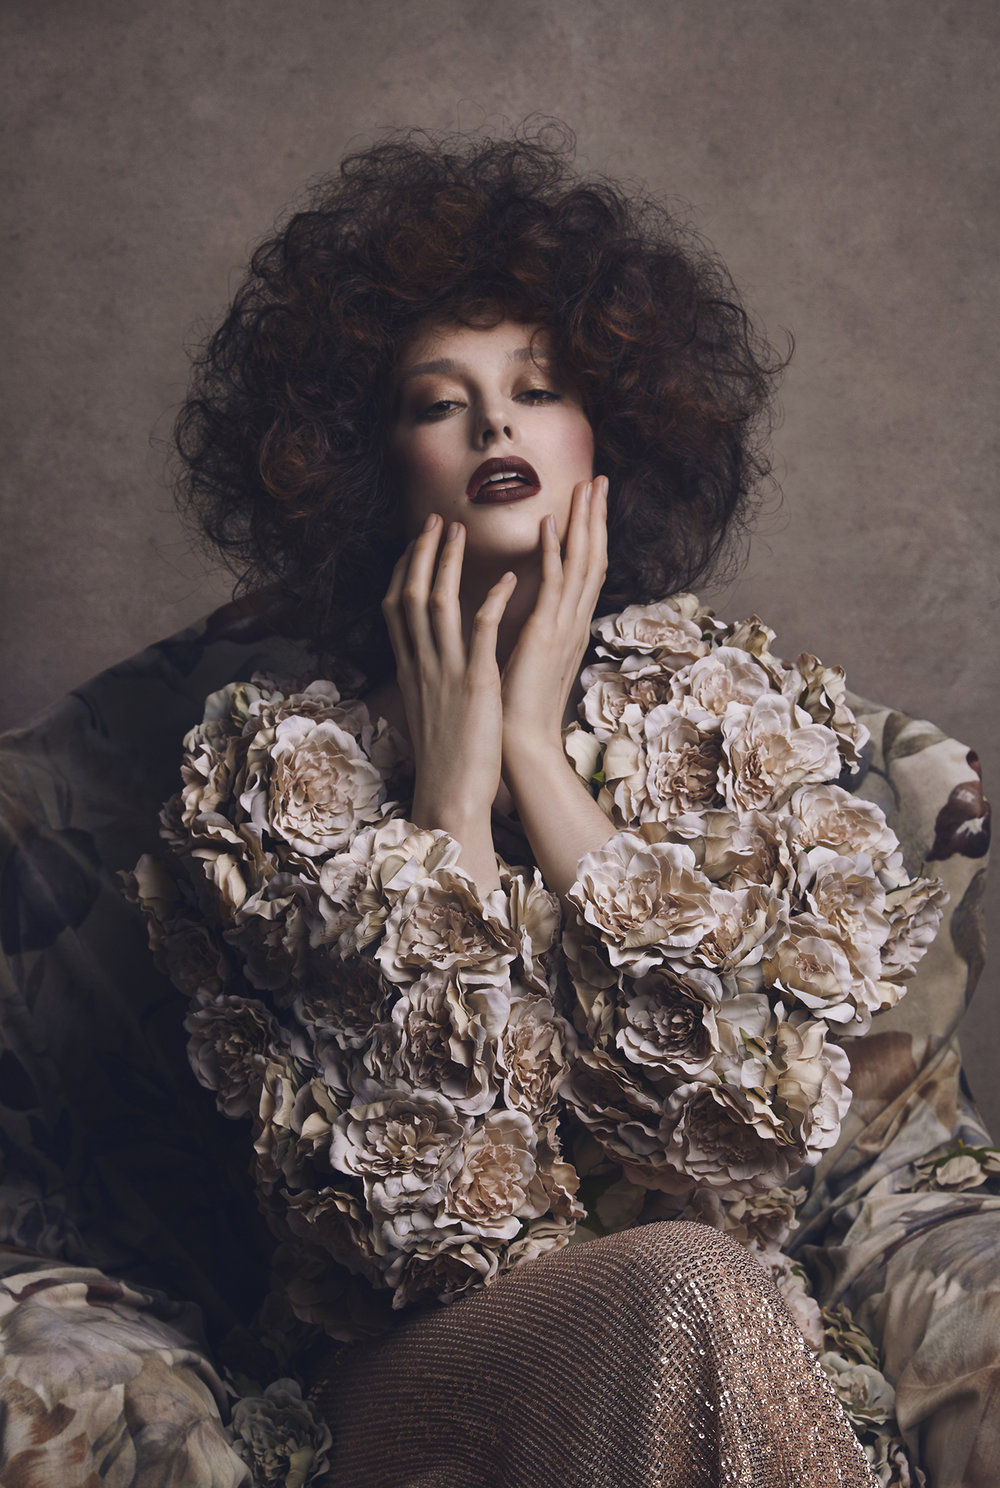 The-Flower-Book-by-Dana-Cole-floral-fashion-model-fashion-photography-fine-art-photography-beauty-photo-floral-shoot-vanity-fair-2.jpg